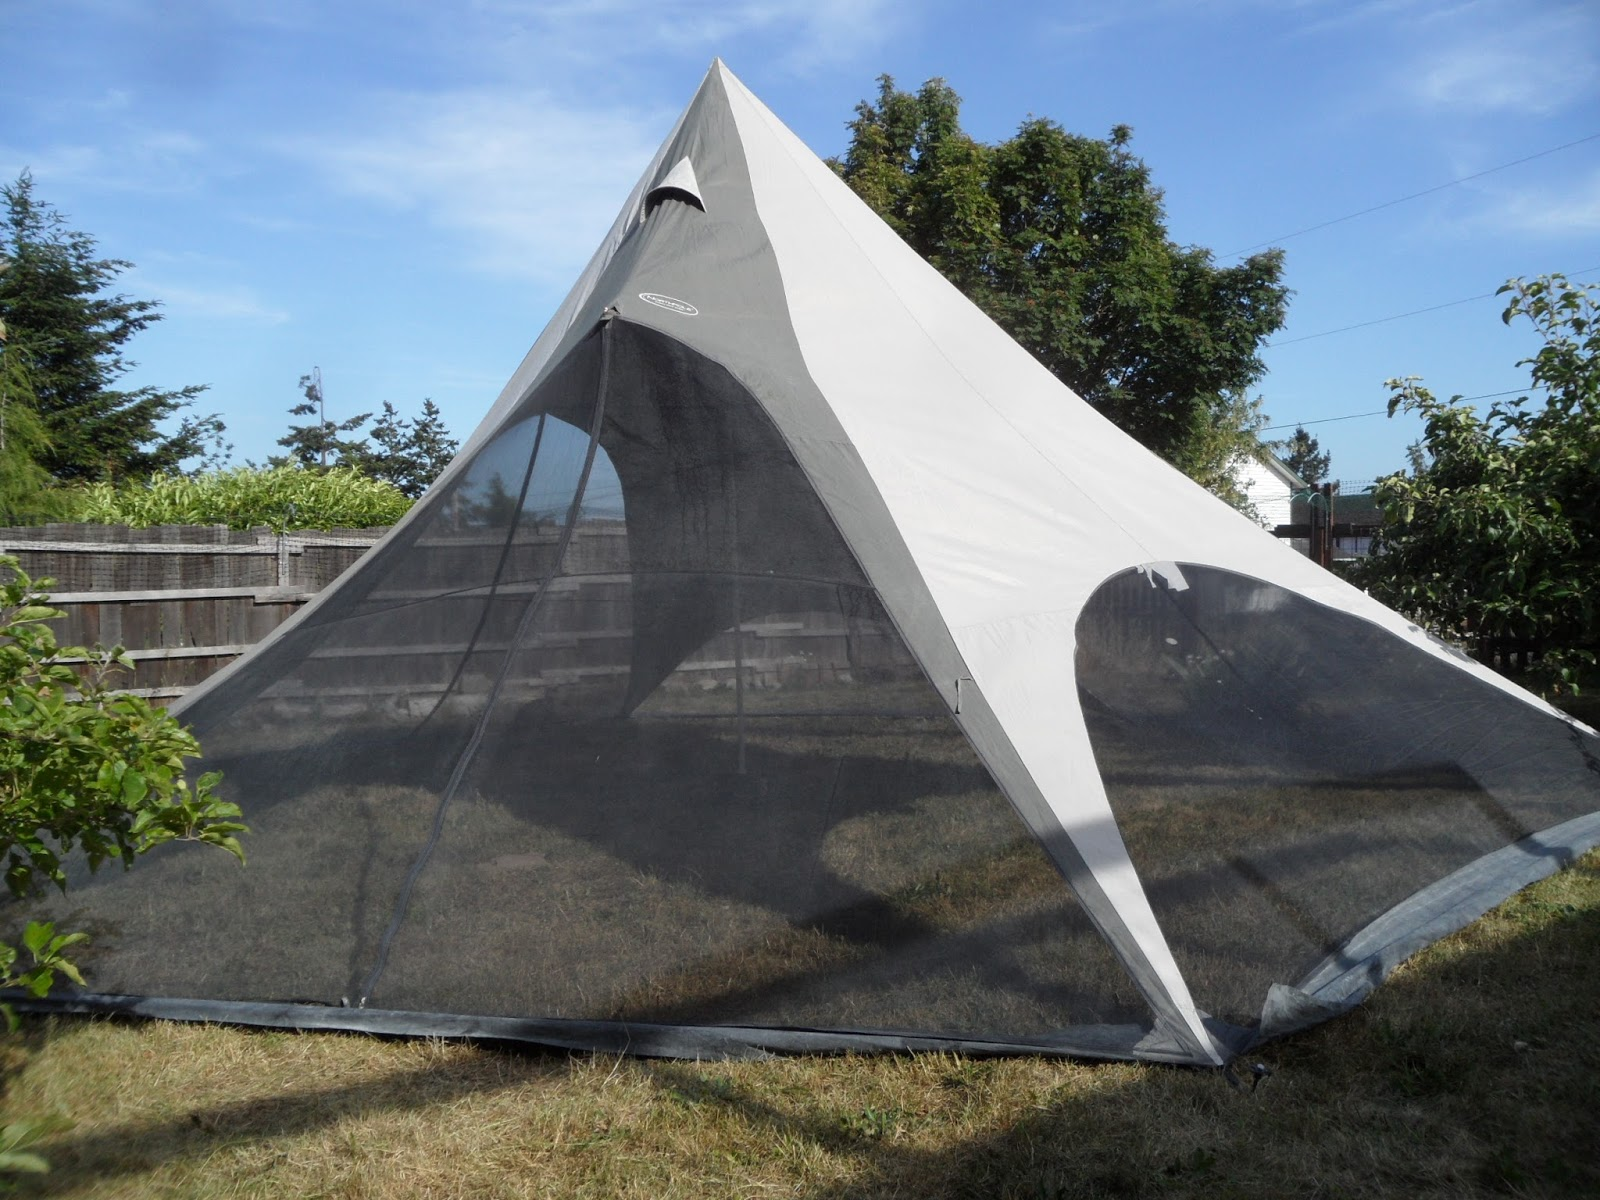 Here are a few parting photos of the North Pole Shade Tent as it sits in the backyard. & Four Bees: North Pole Shade Tent Burning Man Shade Revisited!